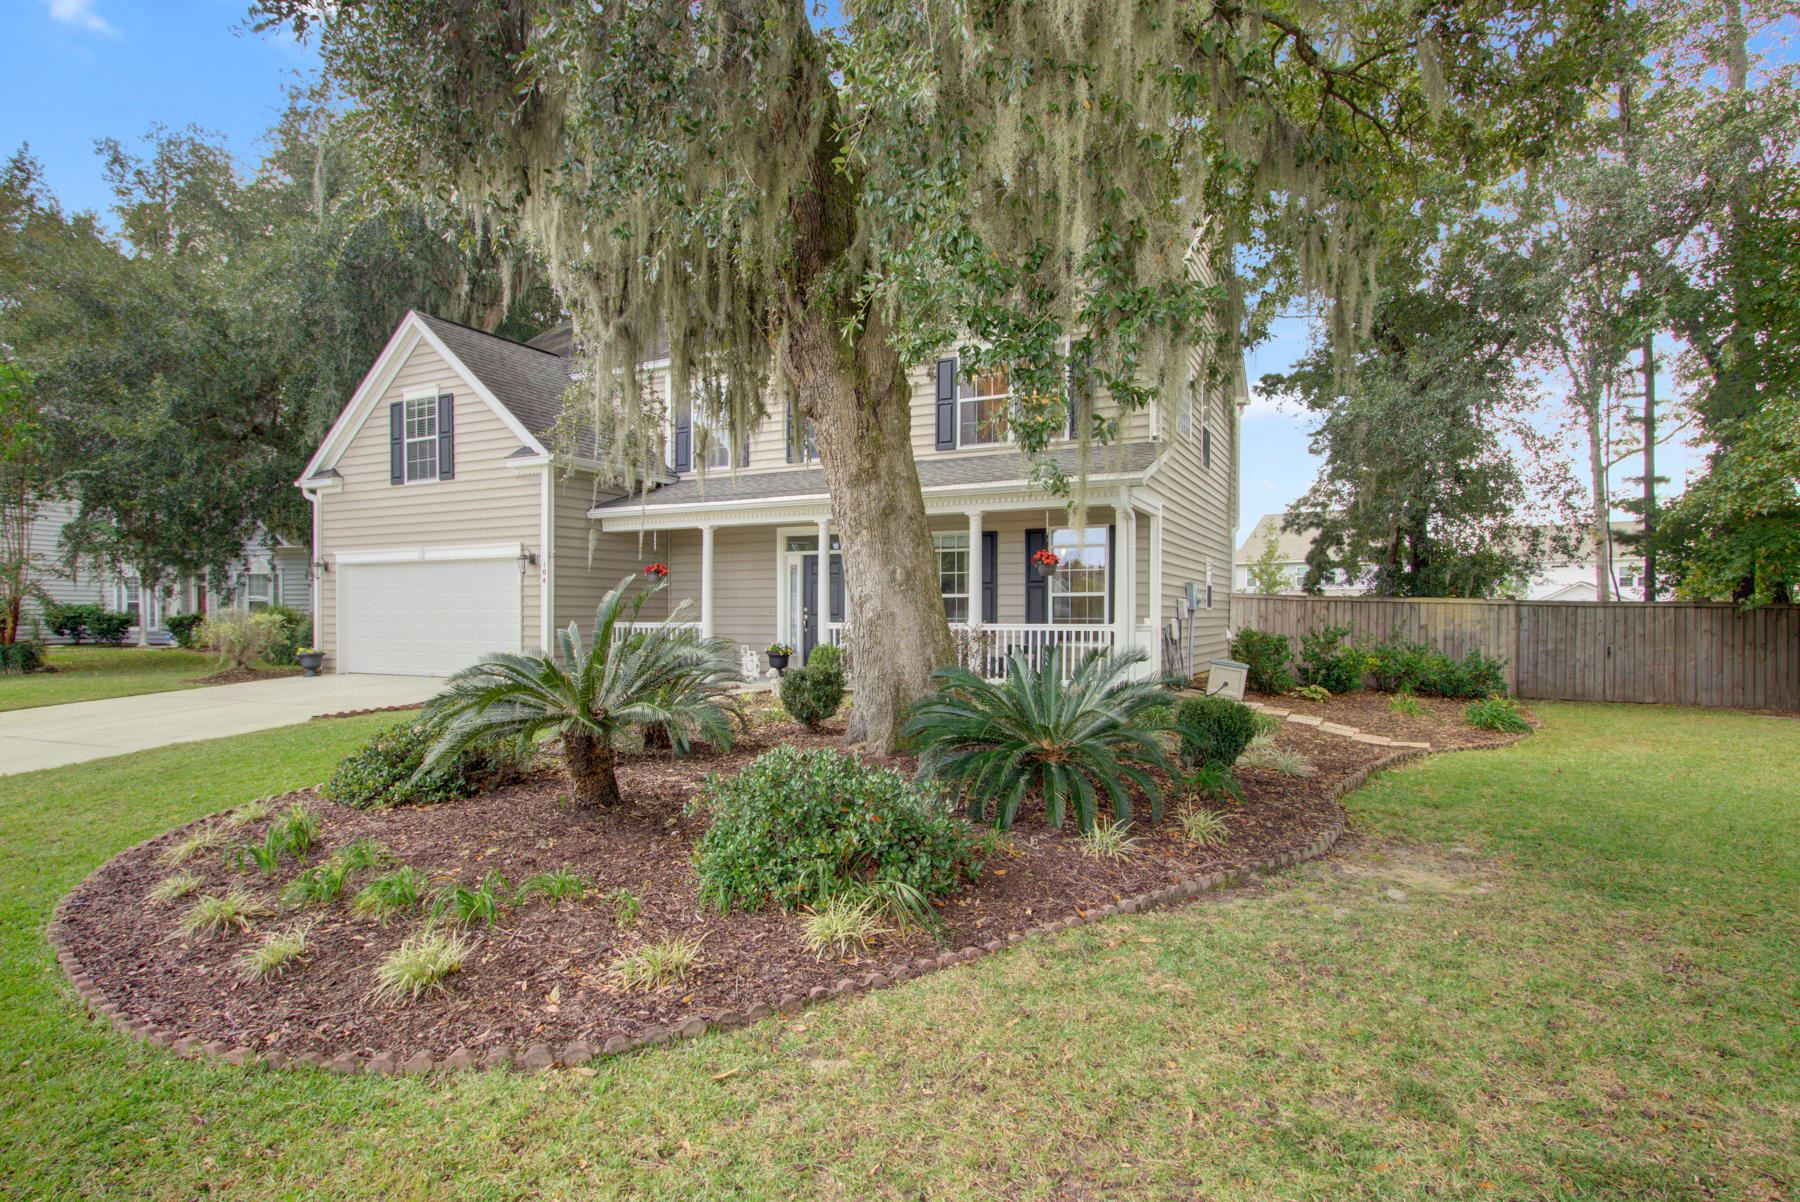 Photo of 104 Sherry Court, Summerville, SC 29485 (MLS # 20029328)